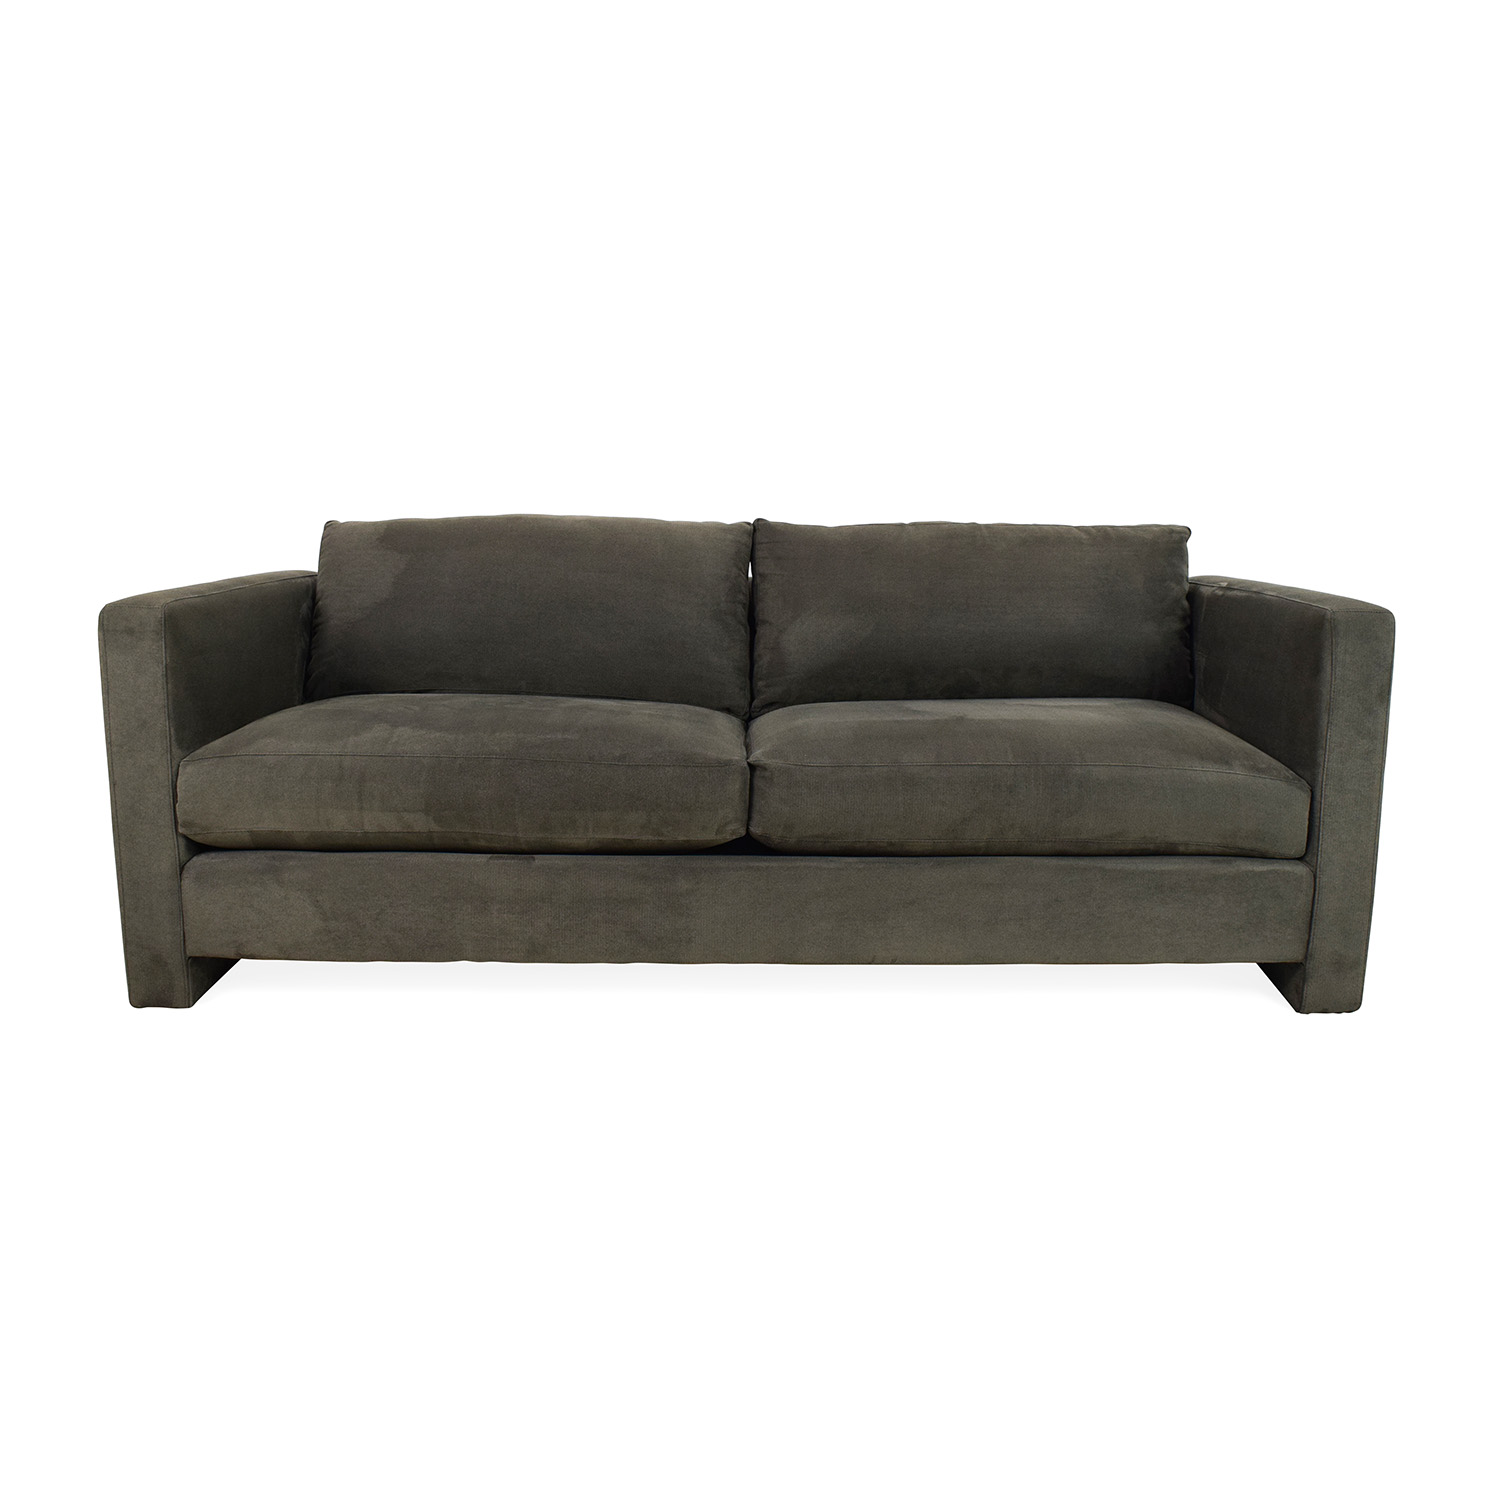 CB2 CB2 Gray Sofa second hand